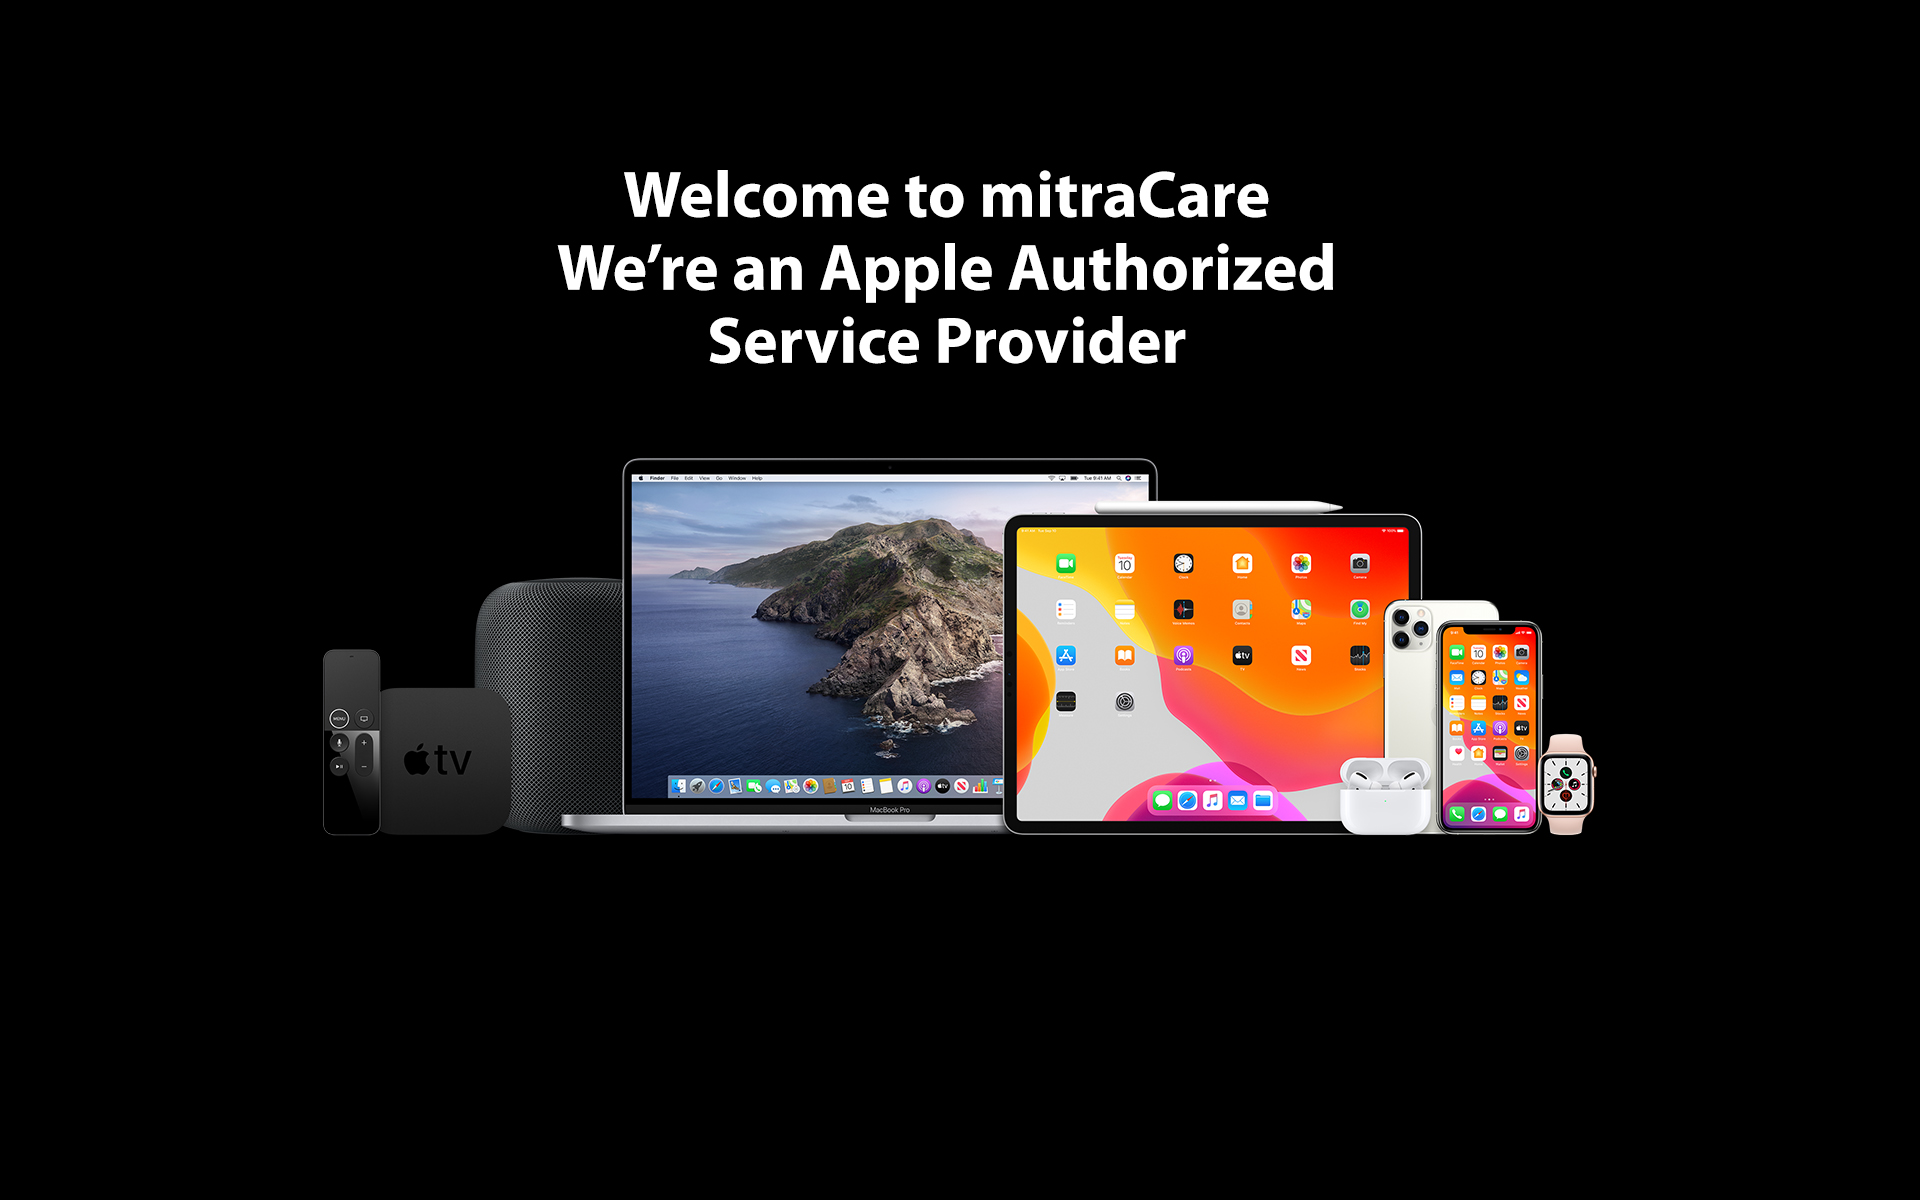 We're an Apple Authorized Service Provider